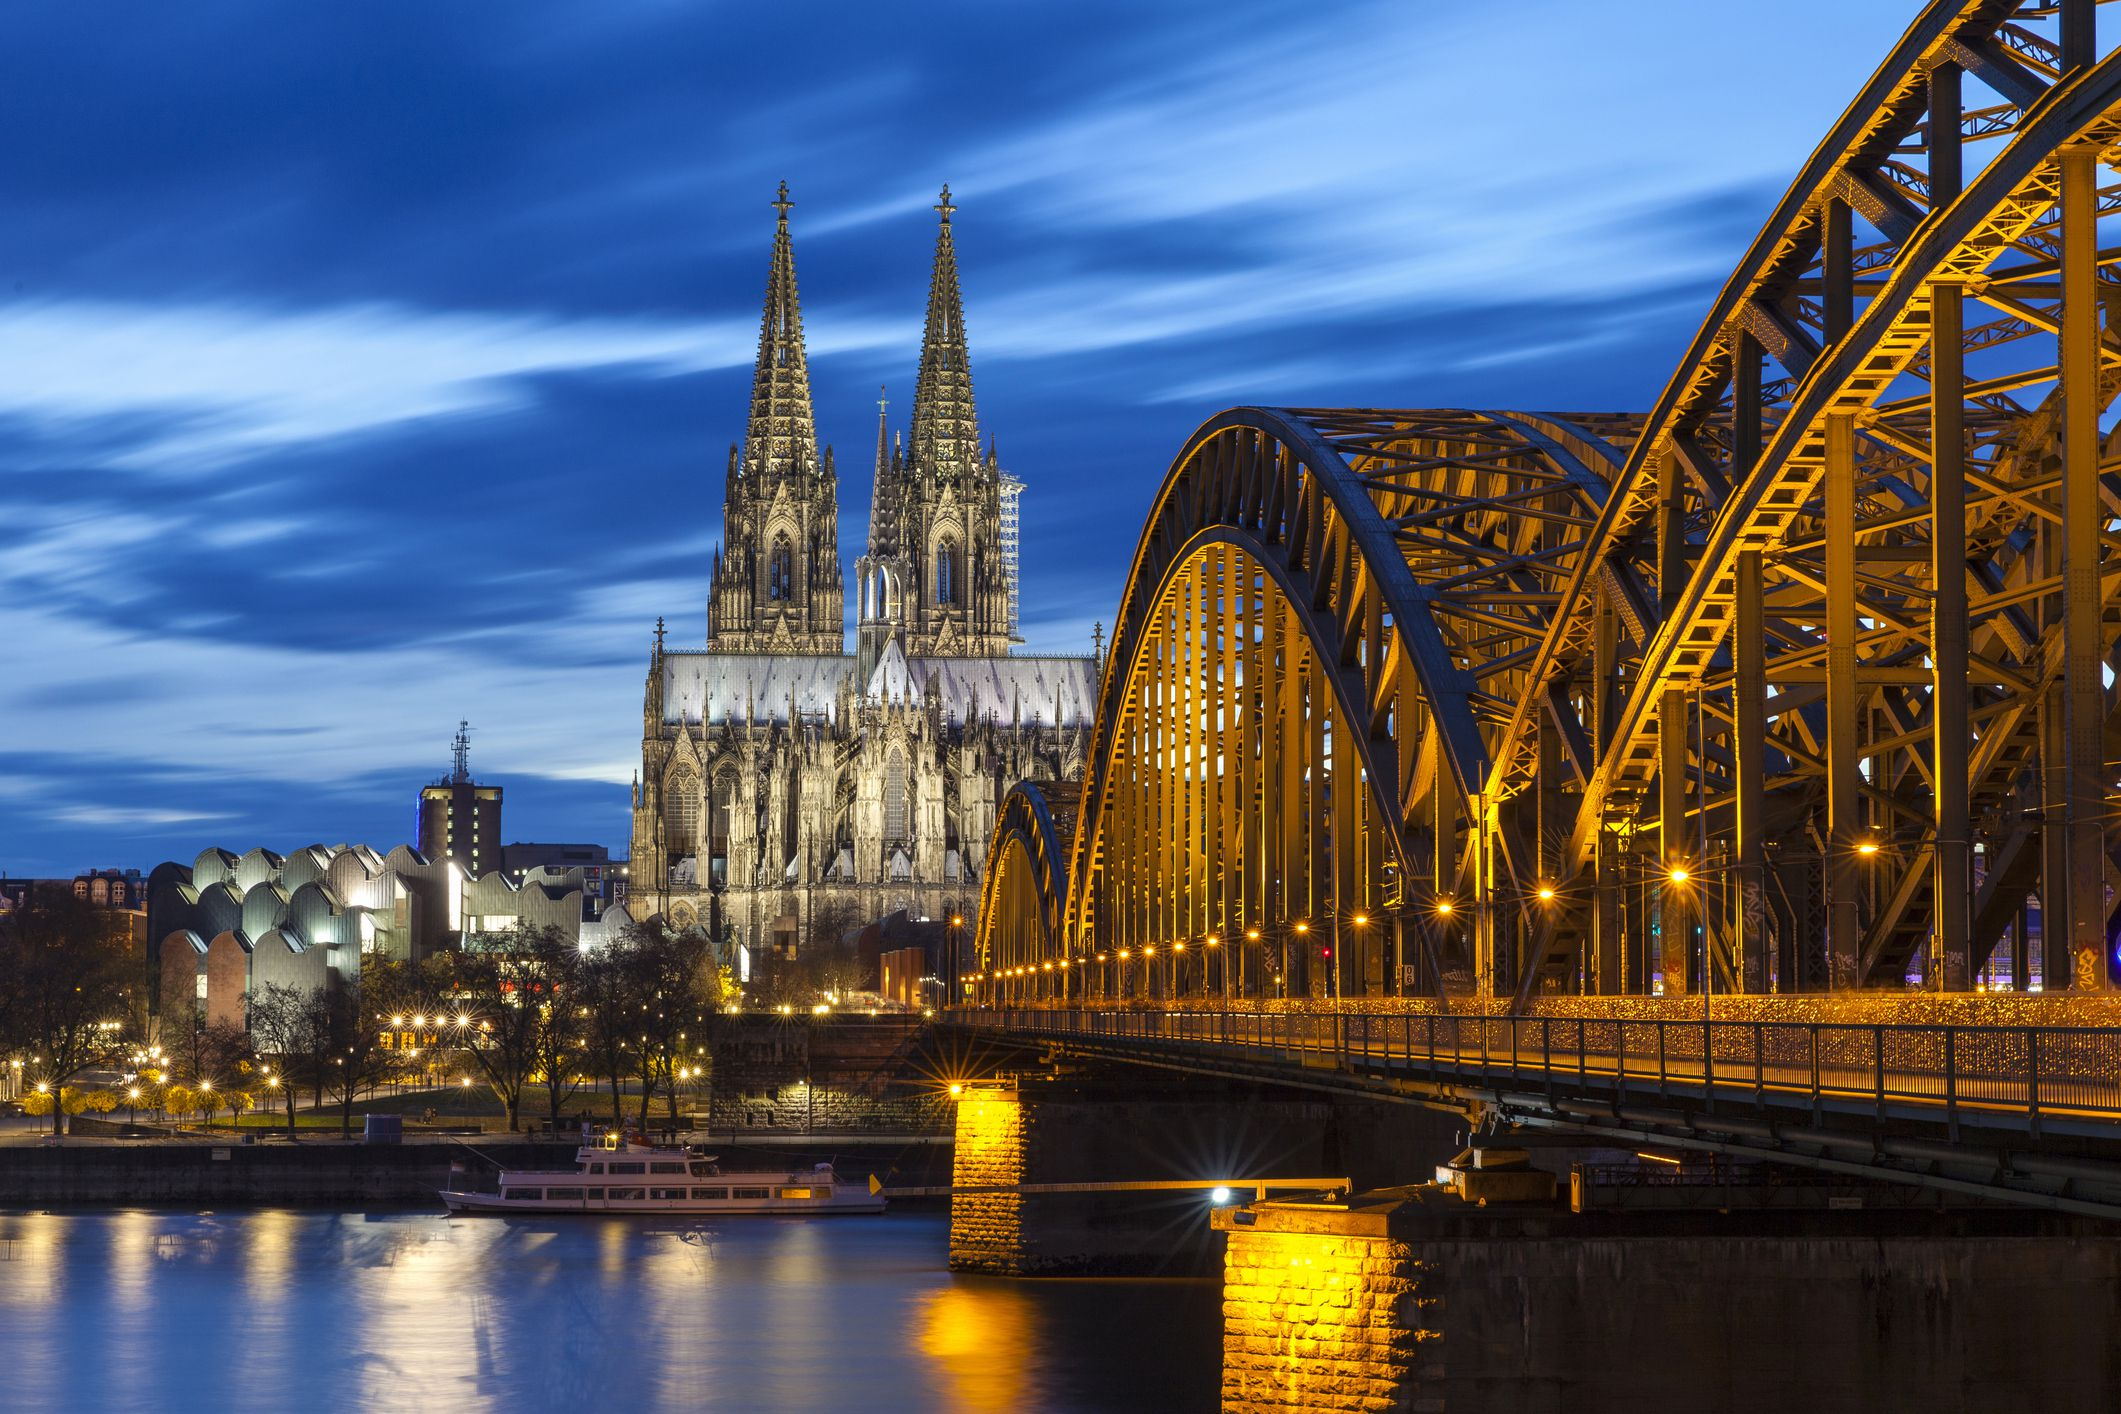 Guide to the Cologne Cathedral in Germany